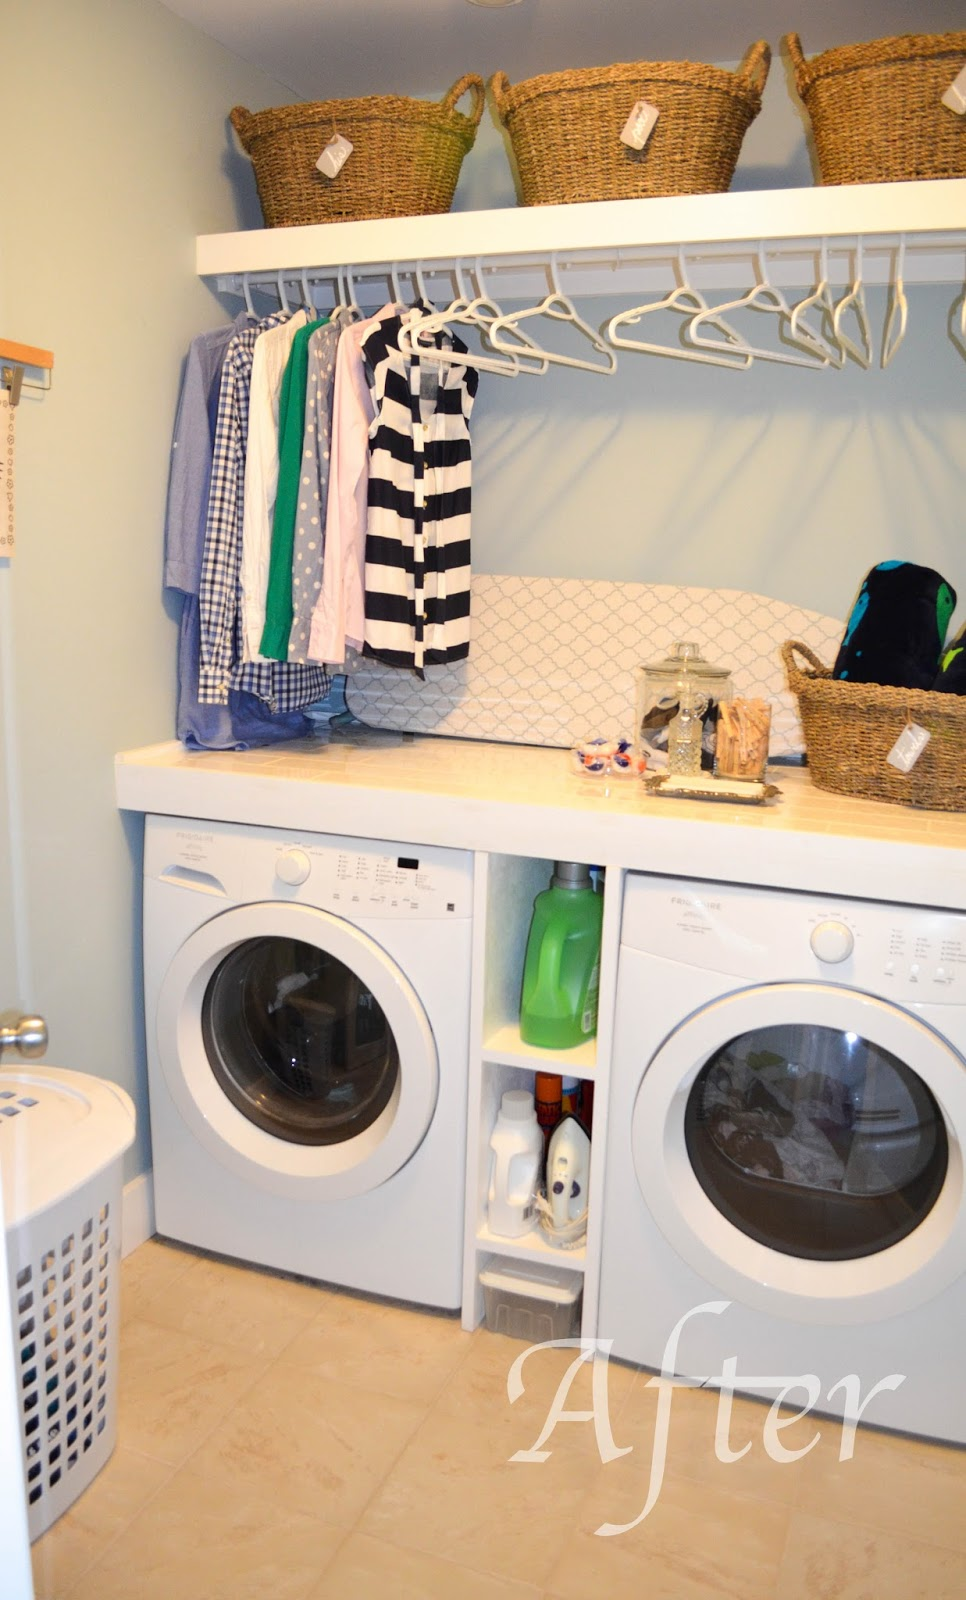 slippers by day organization palooza day 3 laundry room. Black Bedroom Furniture Sets. Home Design Ideas